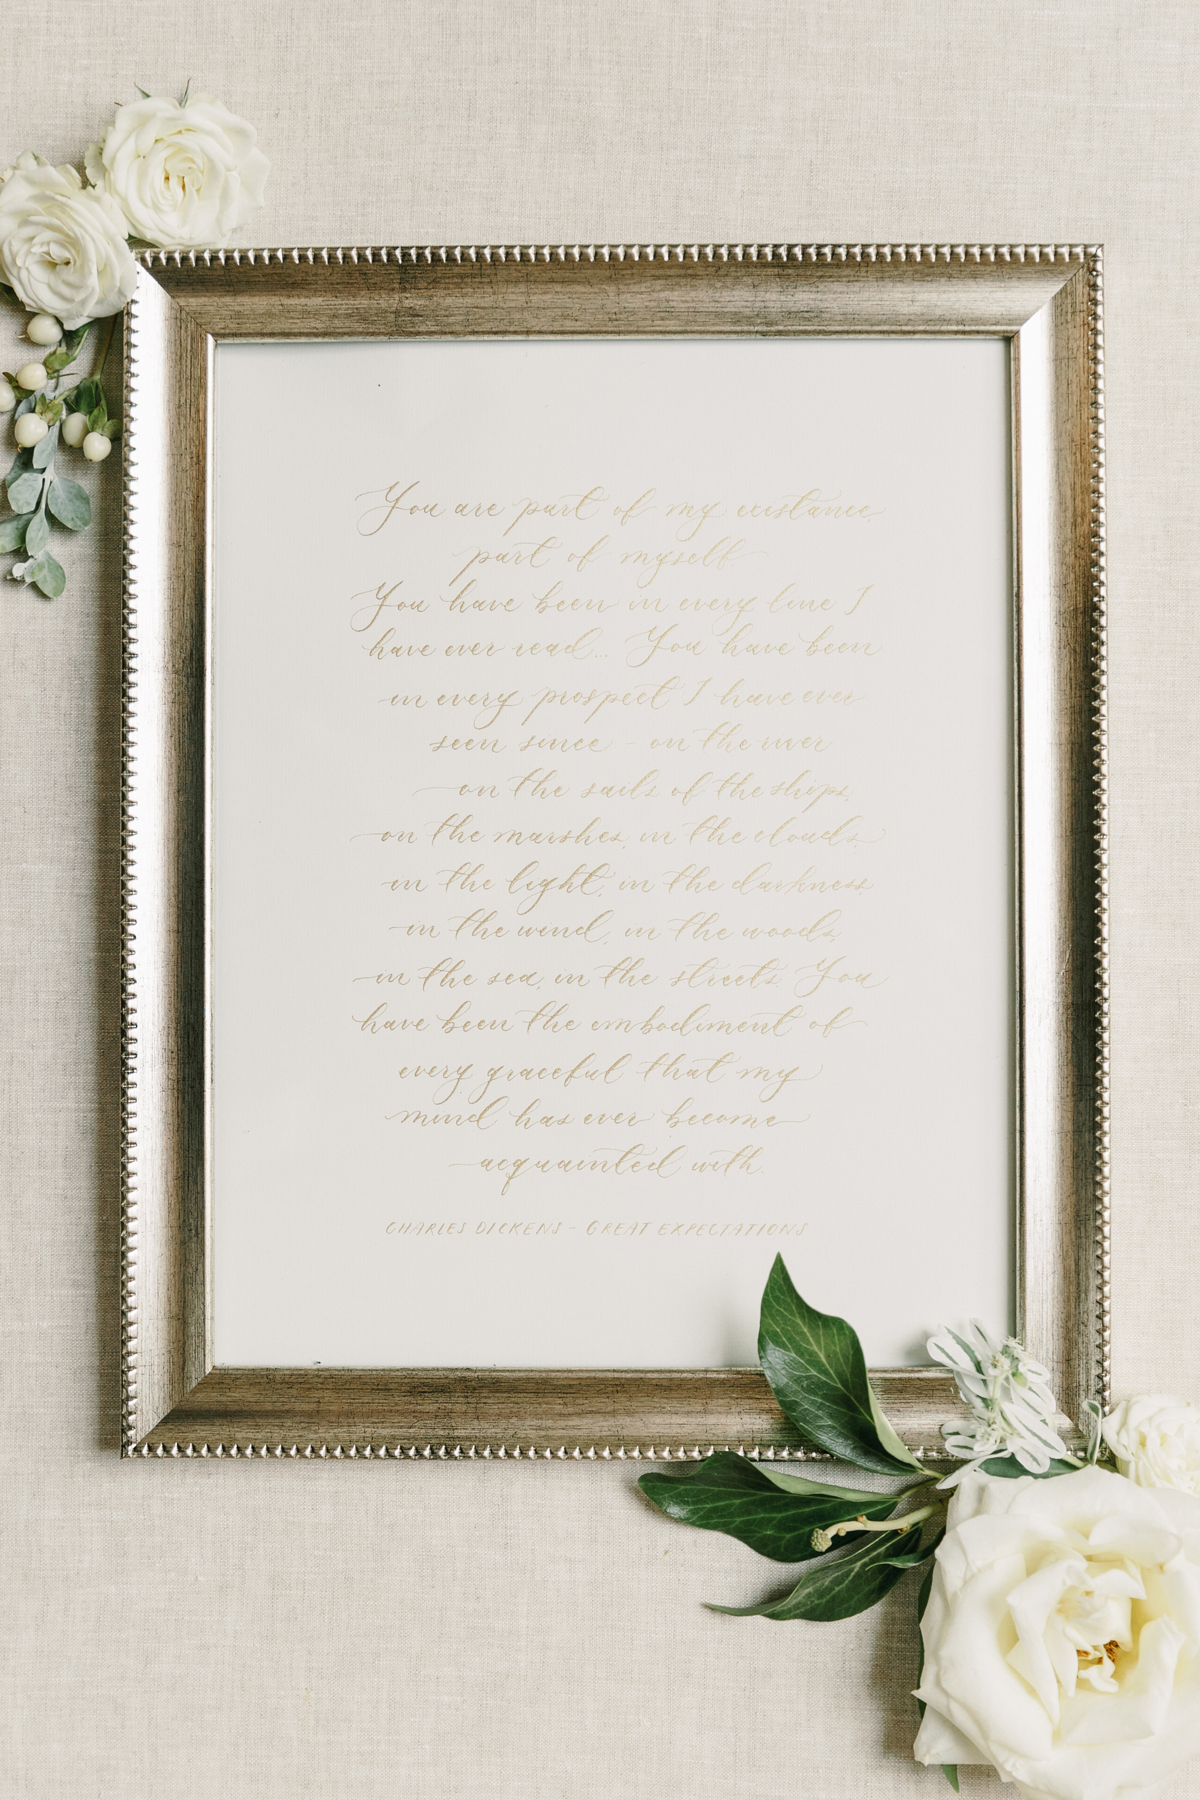 framed calligraphy passage